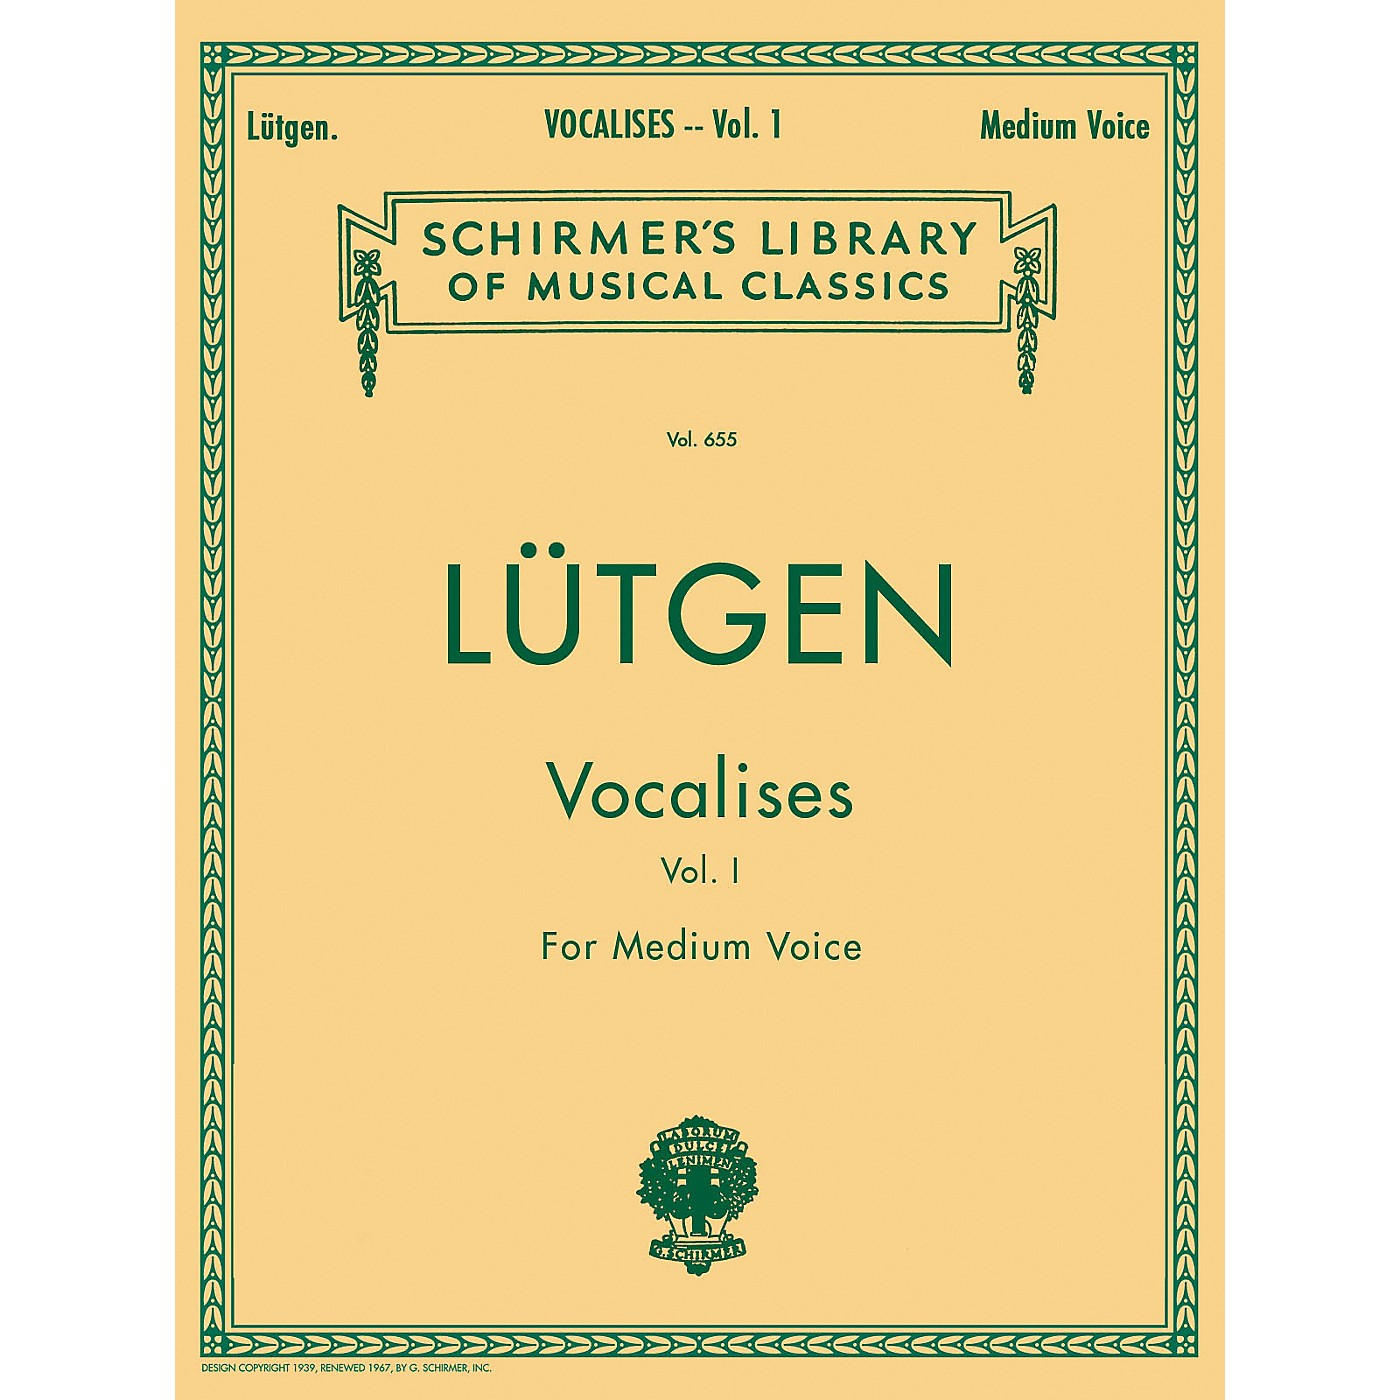 G. Schirmer Vocalises (20 Daily Exercises) Vol. 1 for Medium Voice By L¼tgen thumbnail